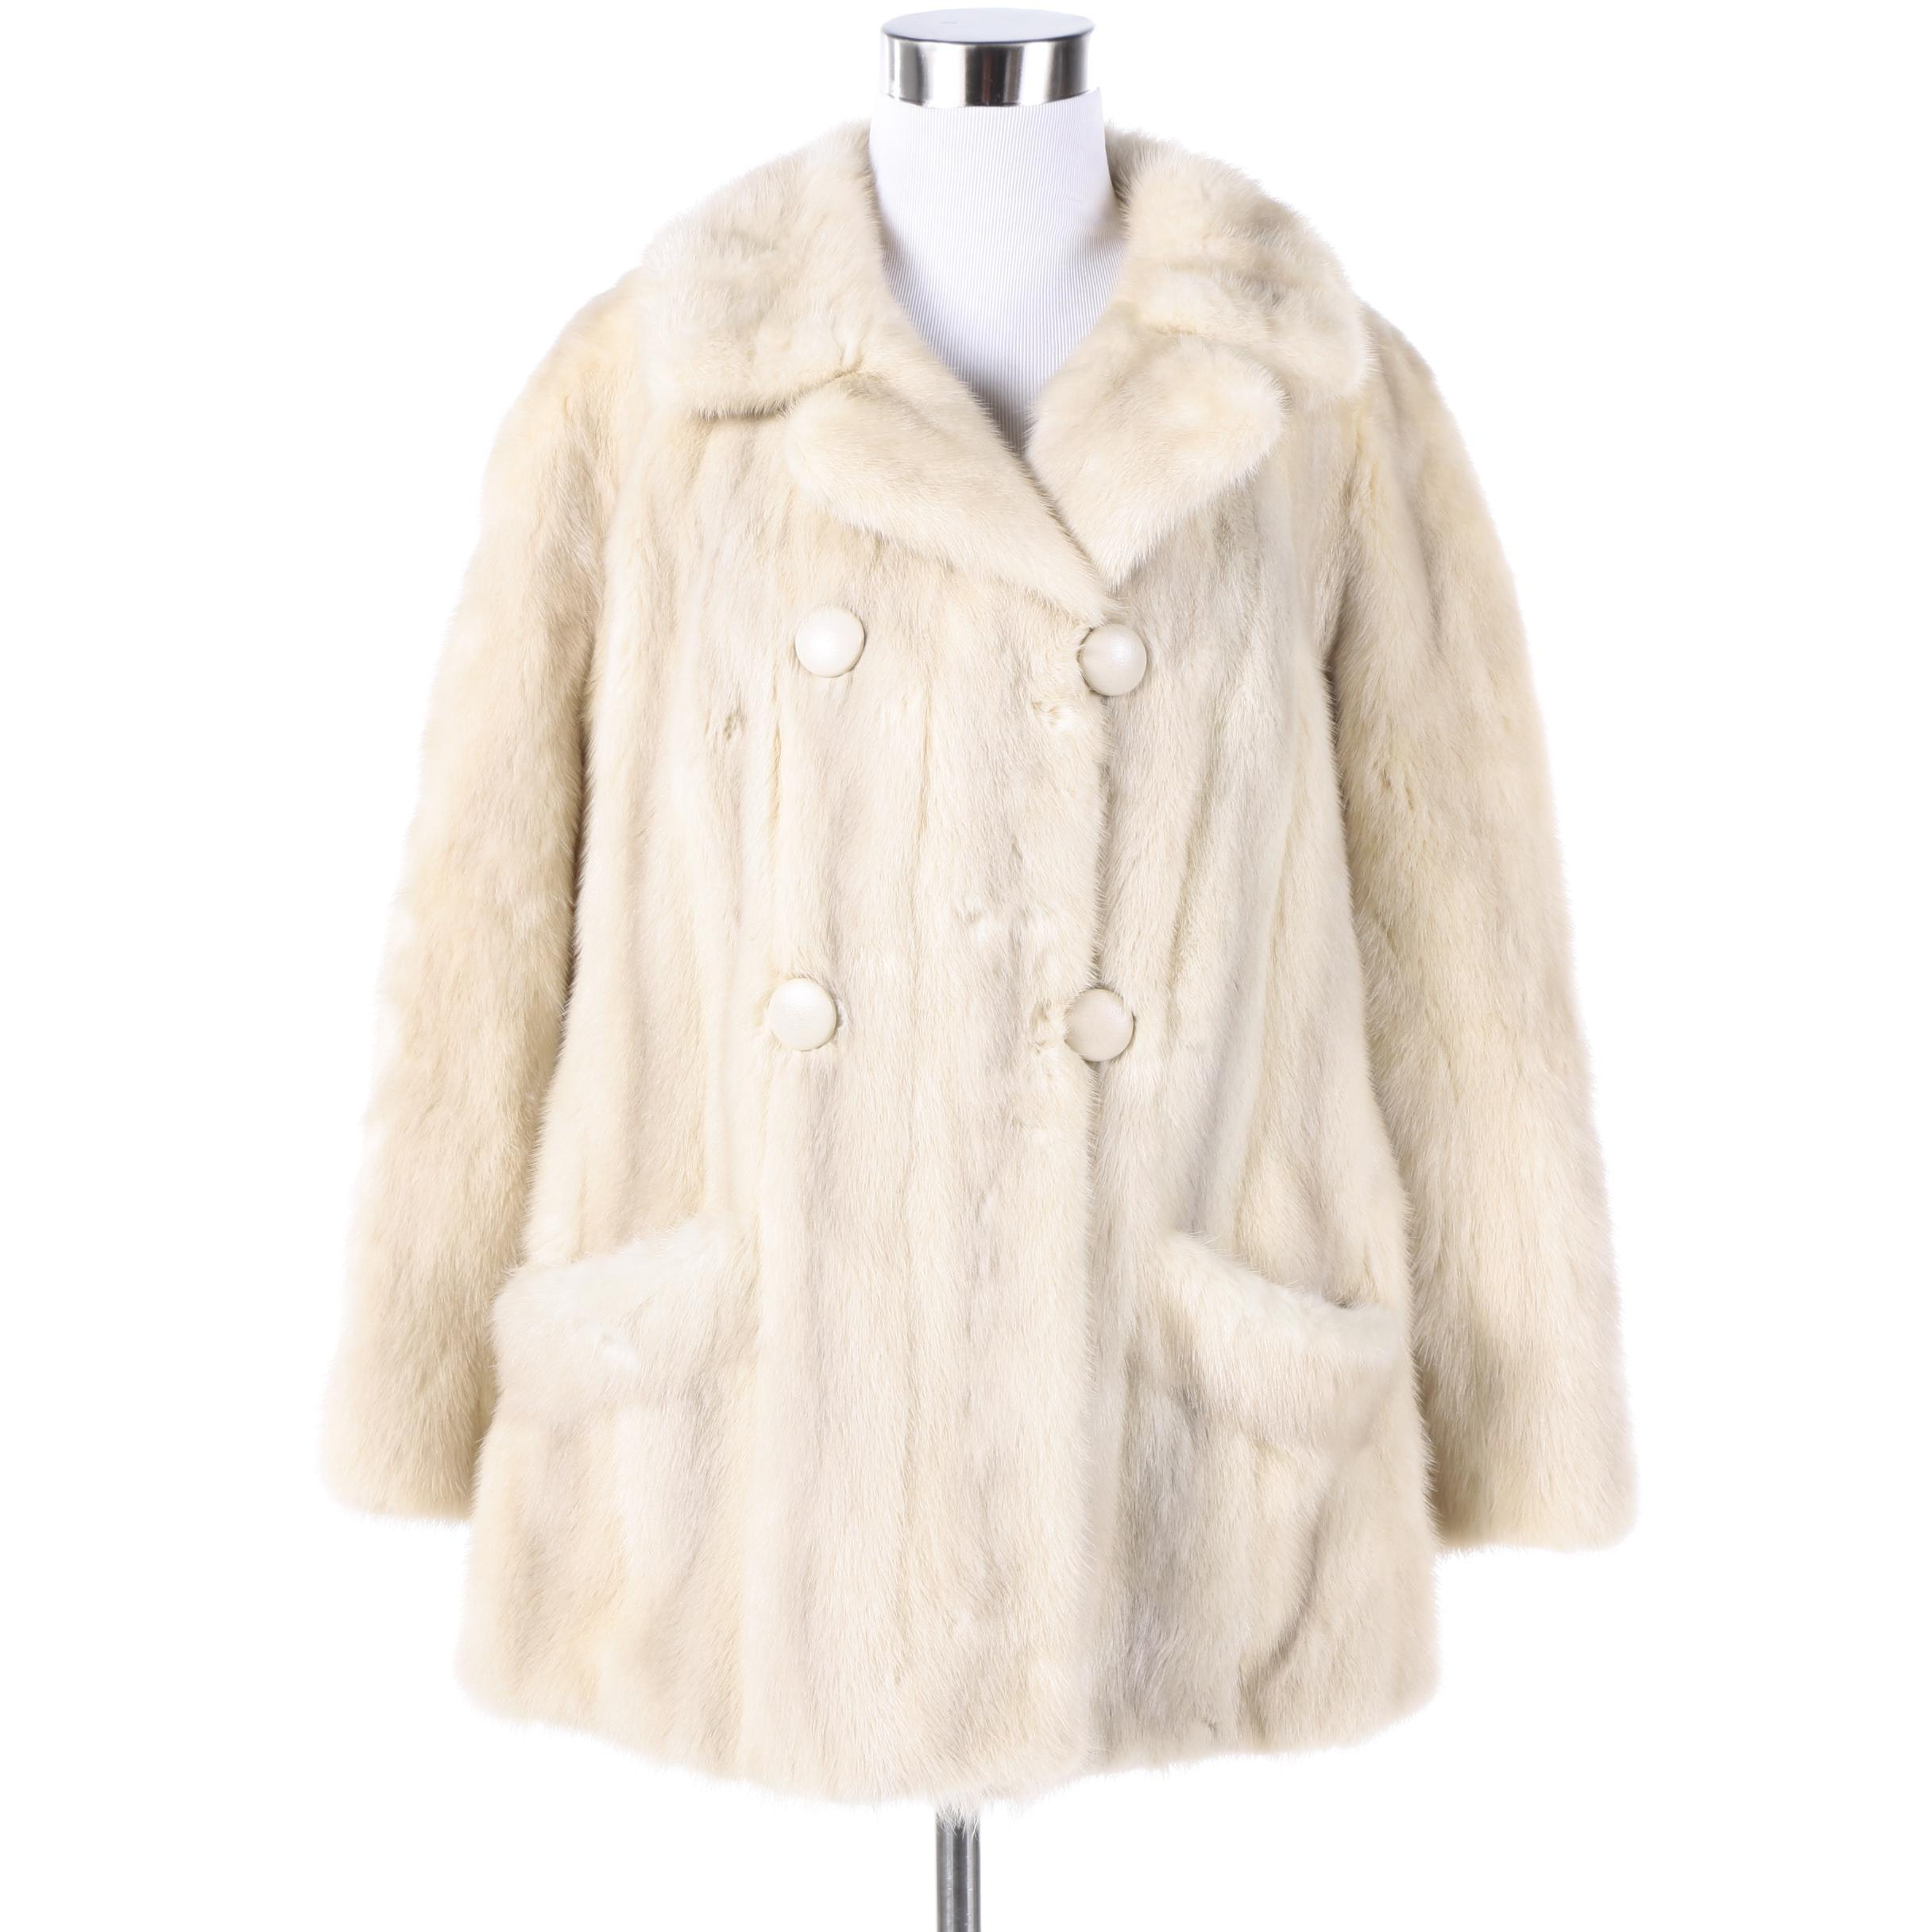 Women's Vintage Shechter-Segal Mink Fur Coat